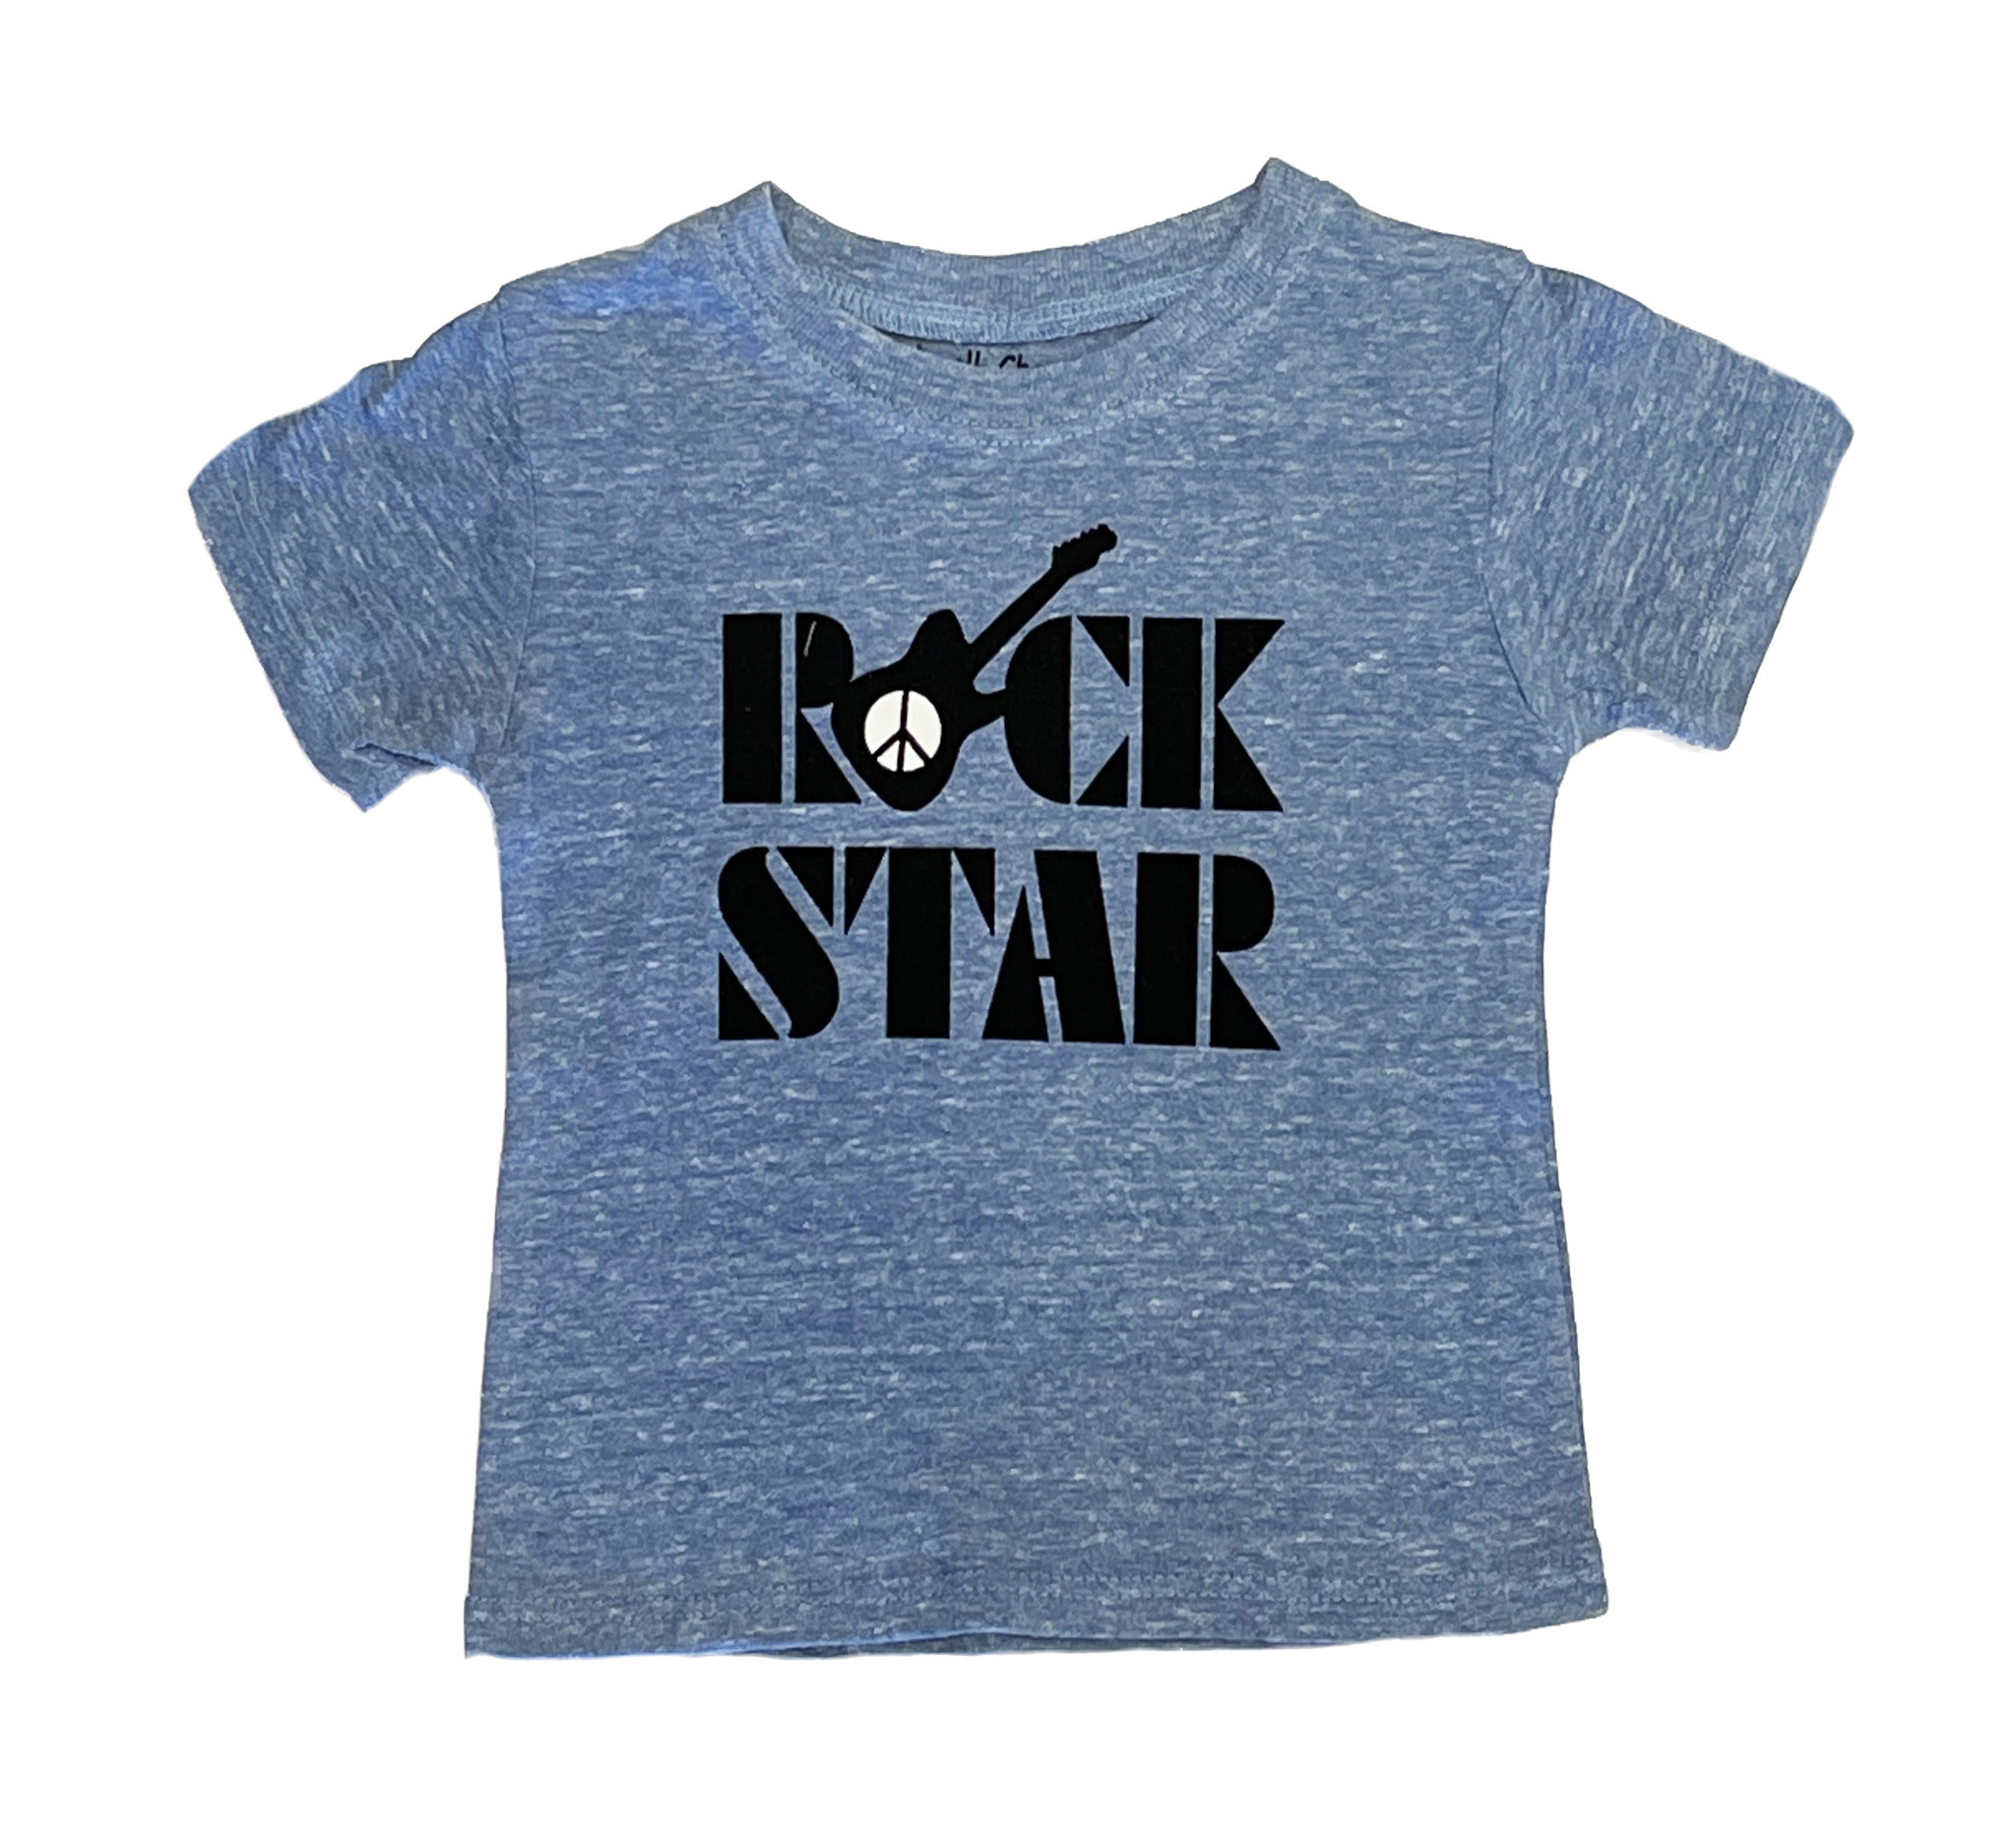 Small Change Blue Rock Star Tee